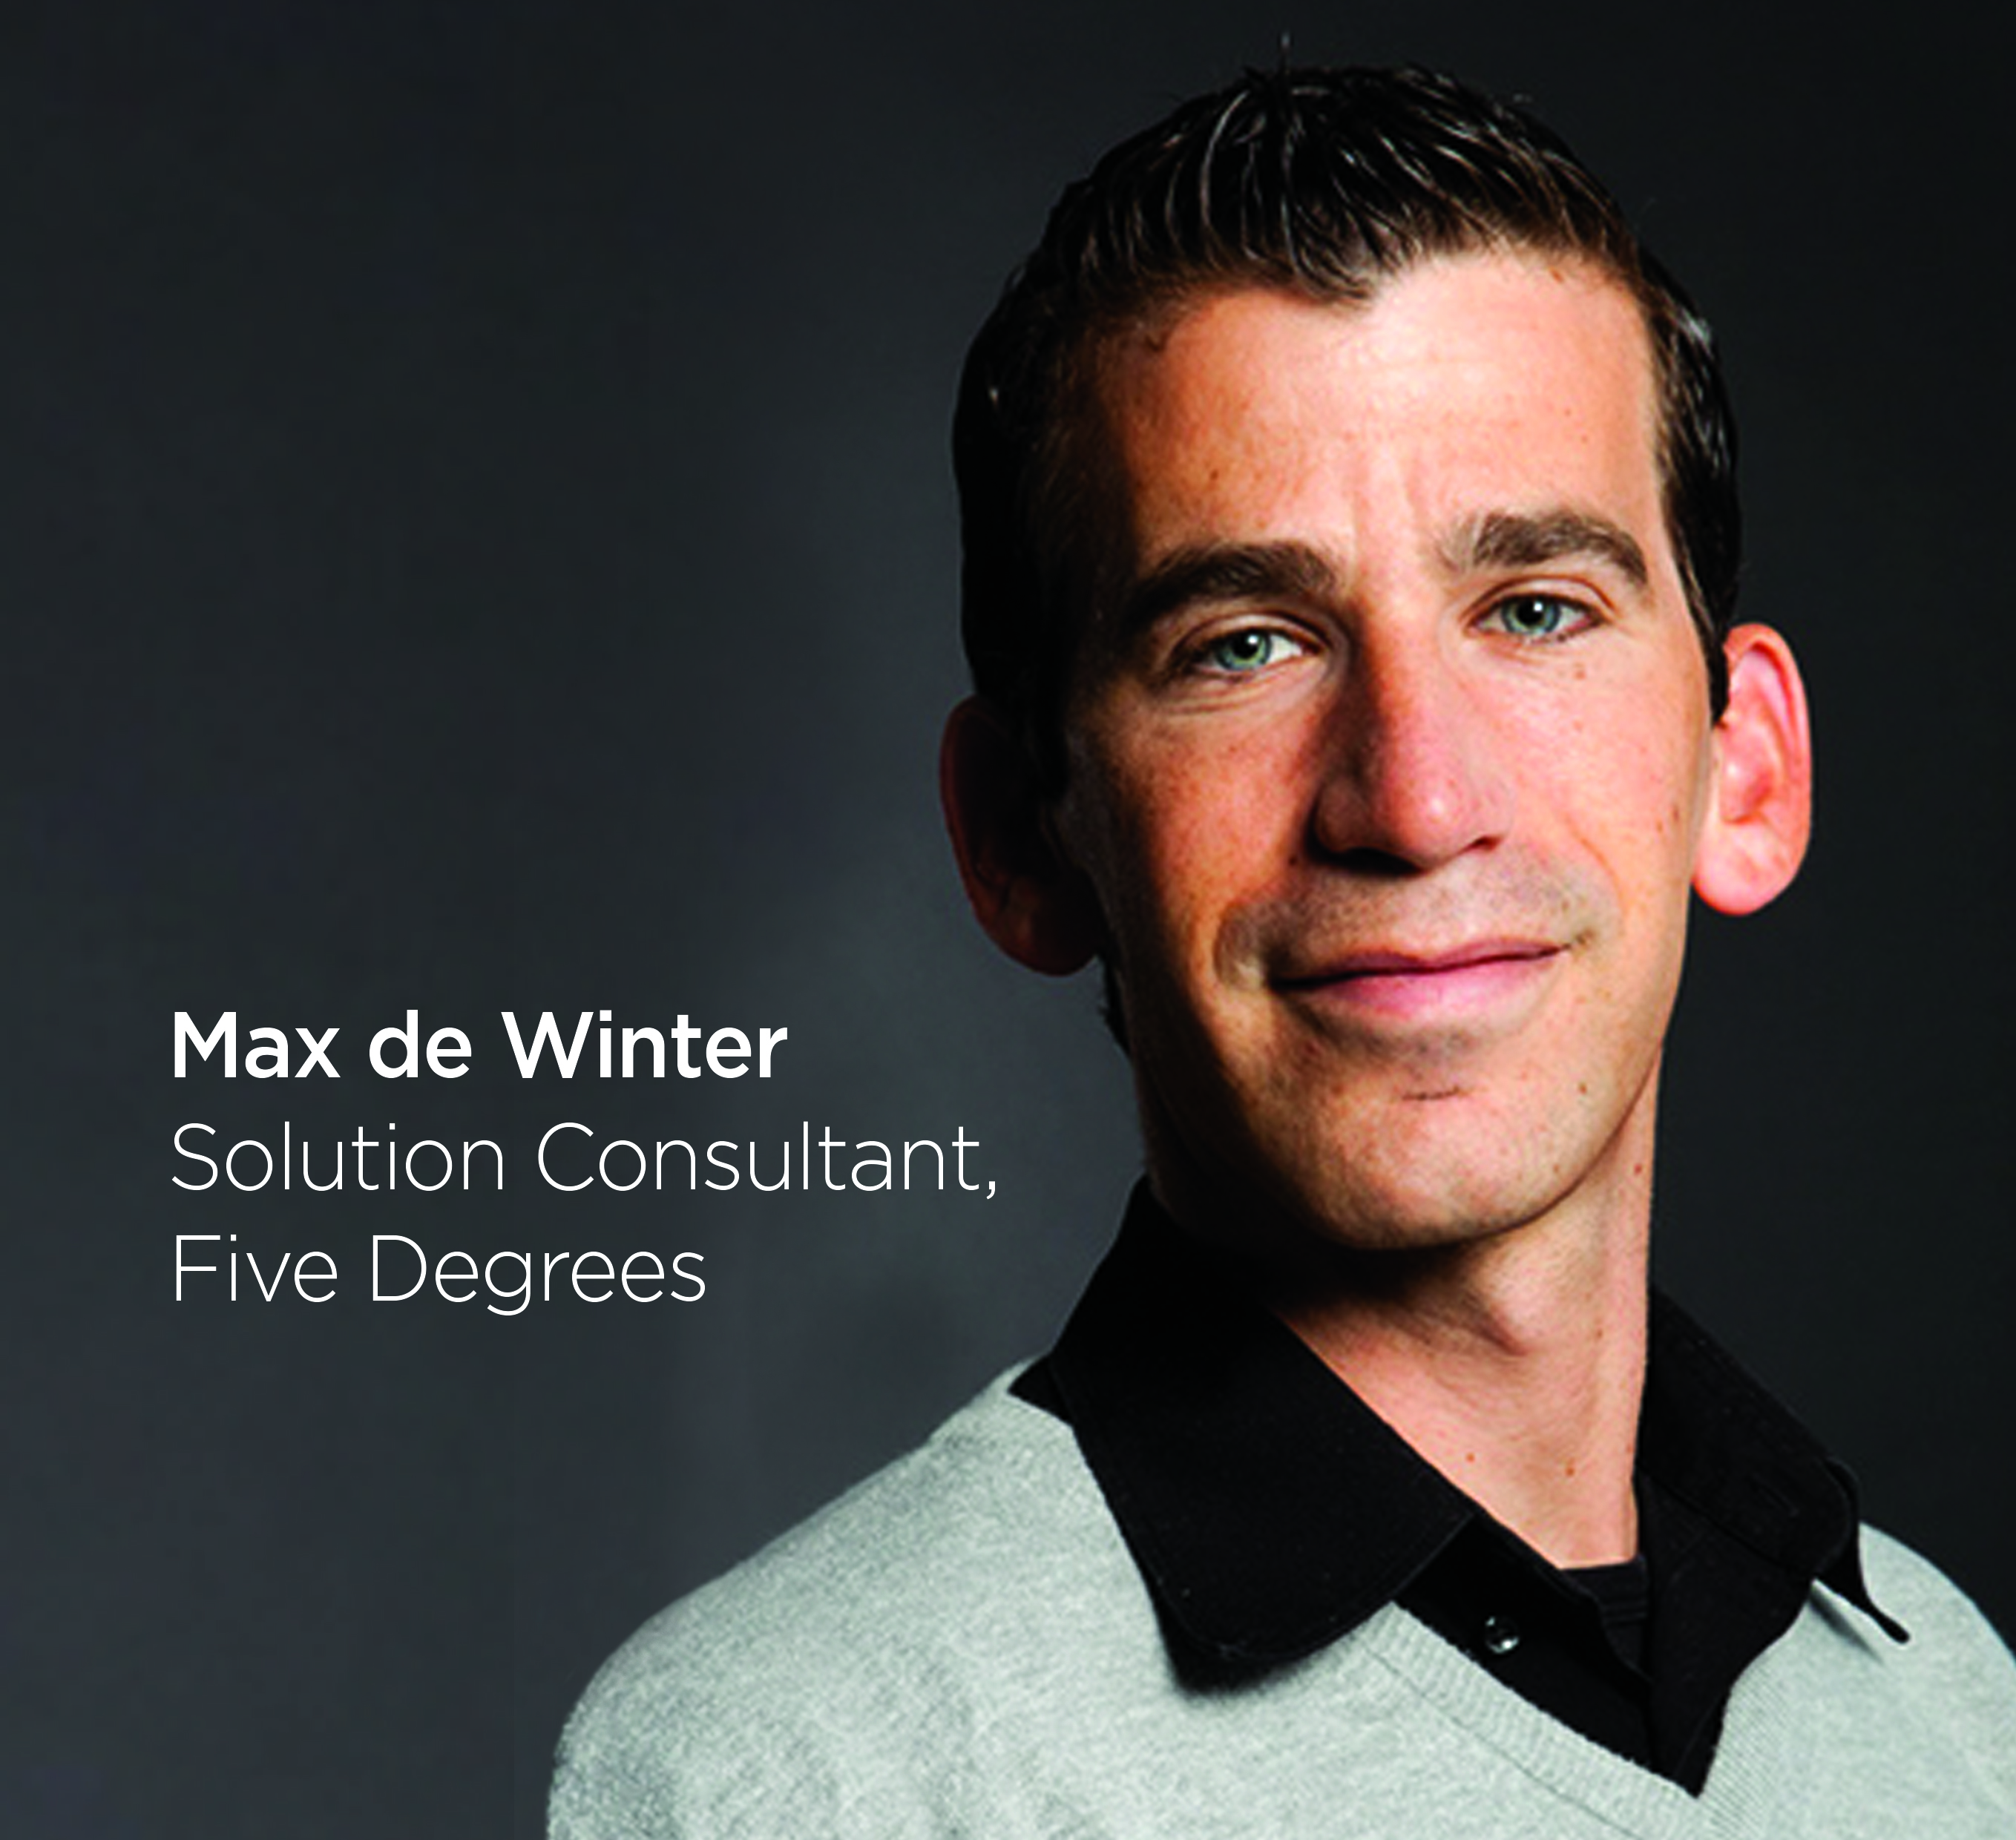 Five Degrees Solution Consultant Max de Winter